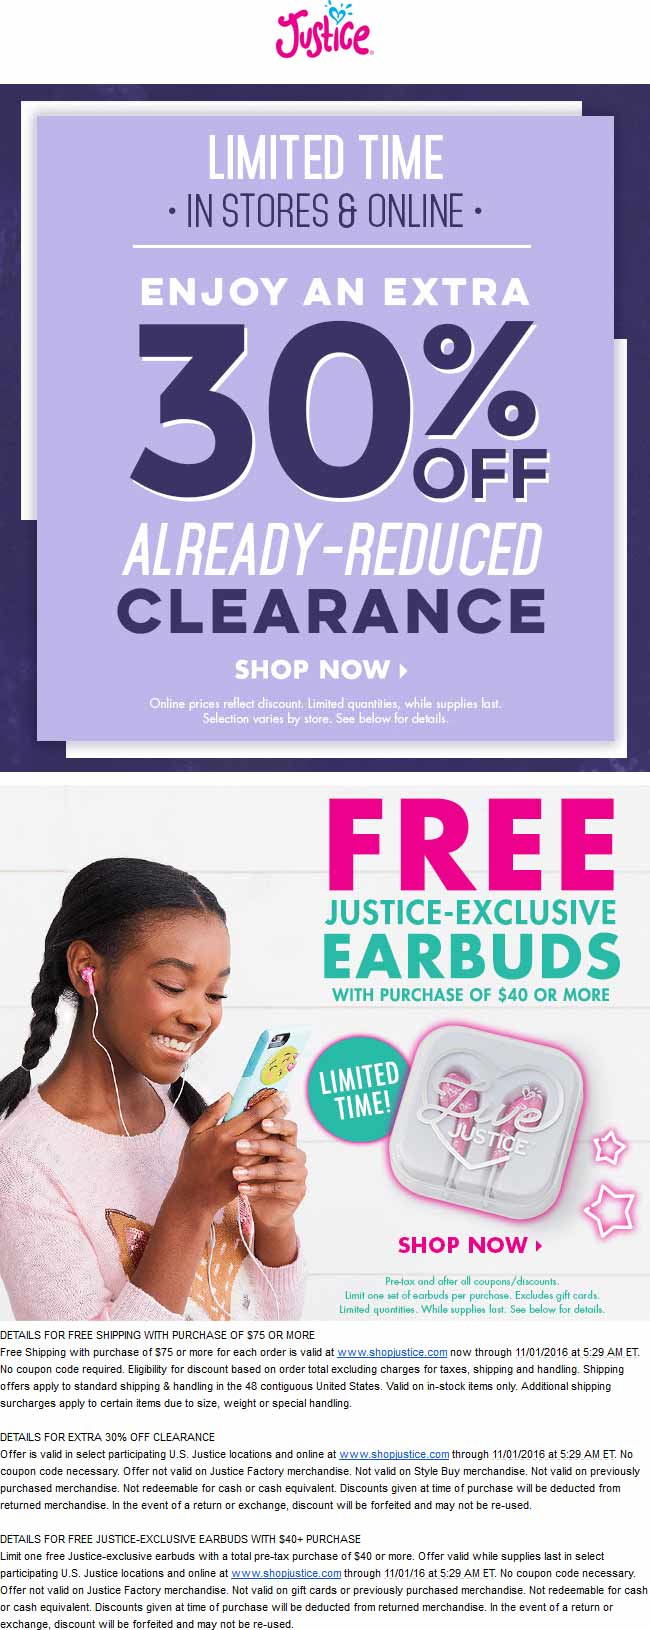 Justice.com Promo Coupon Extra 30% off clearance, free earbuds on $40 spent at Justice, ditto online